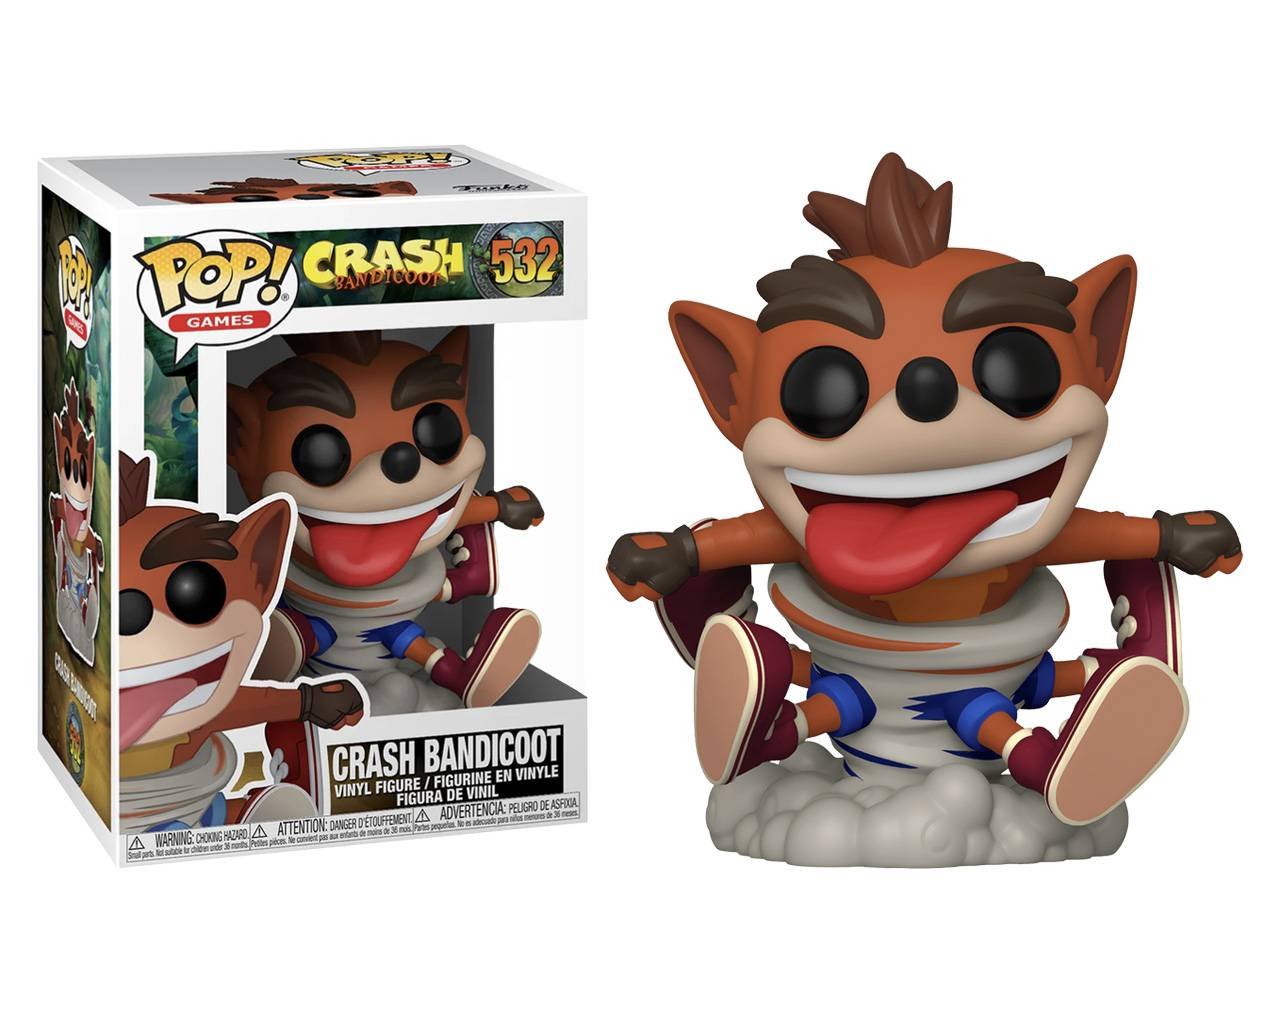 Crash Bandicoot (Spinning) Pop! Vinyl